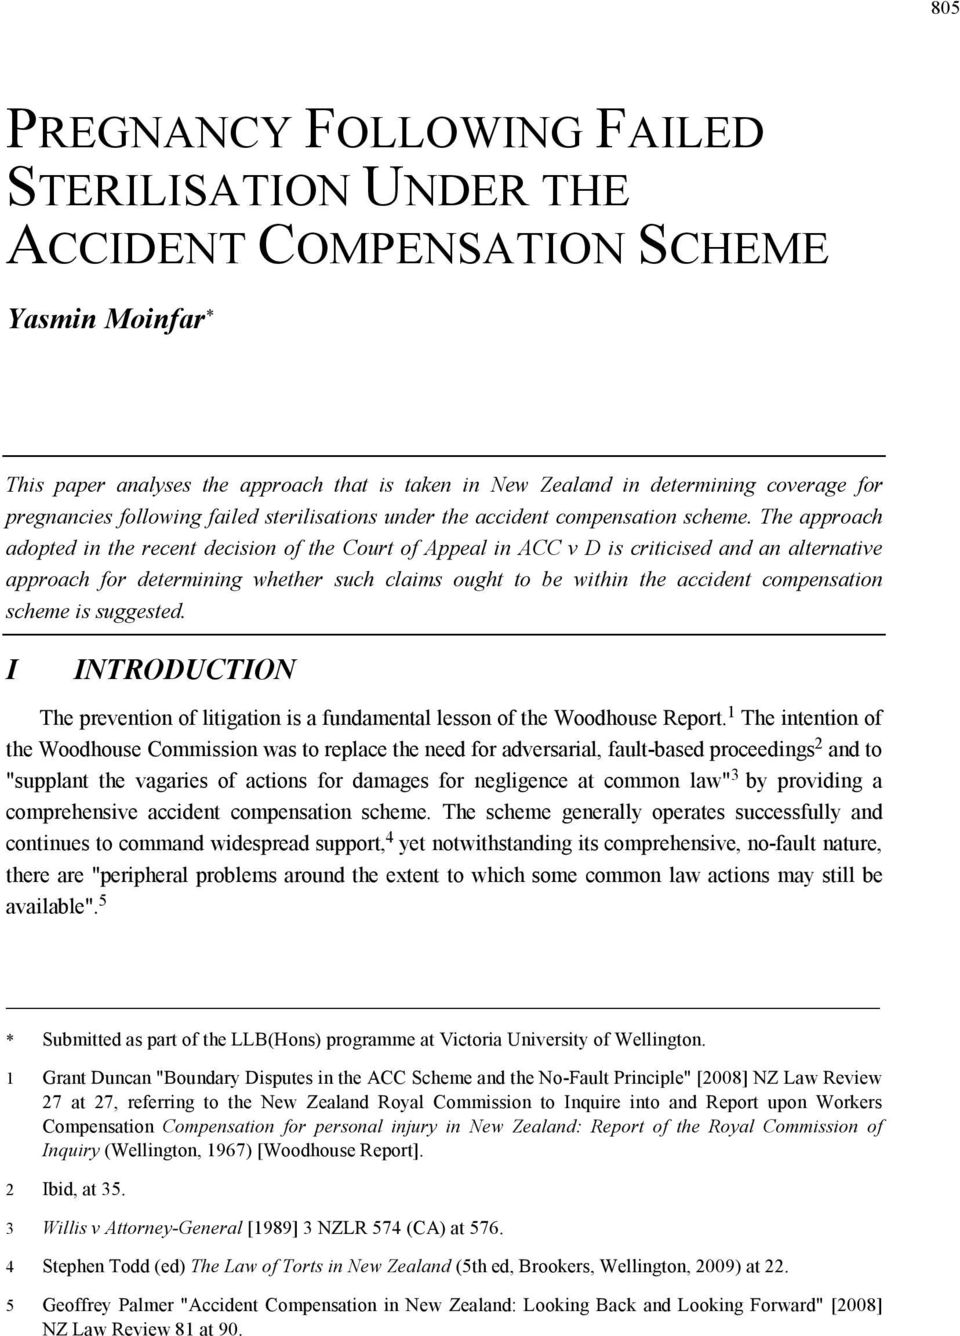 The approach adopted in the recent decision of the Court of Appeal in ACC v D is criticised and an alternative approach for determining whether such claims ought to be within the accident